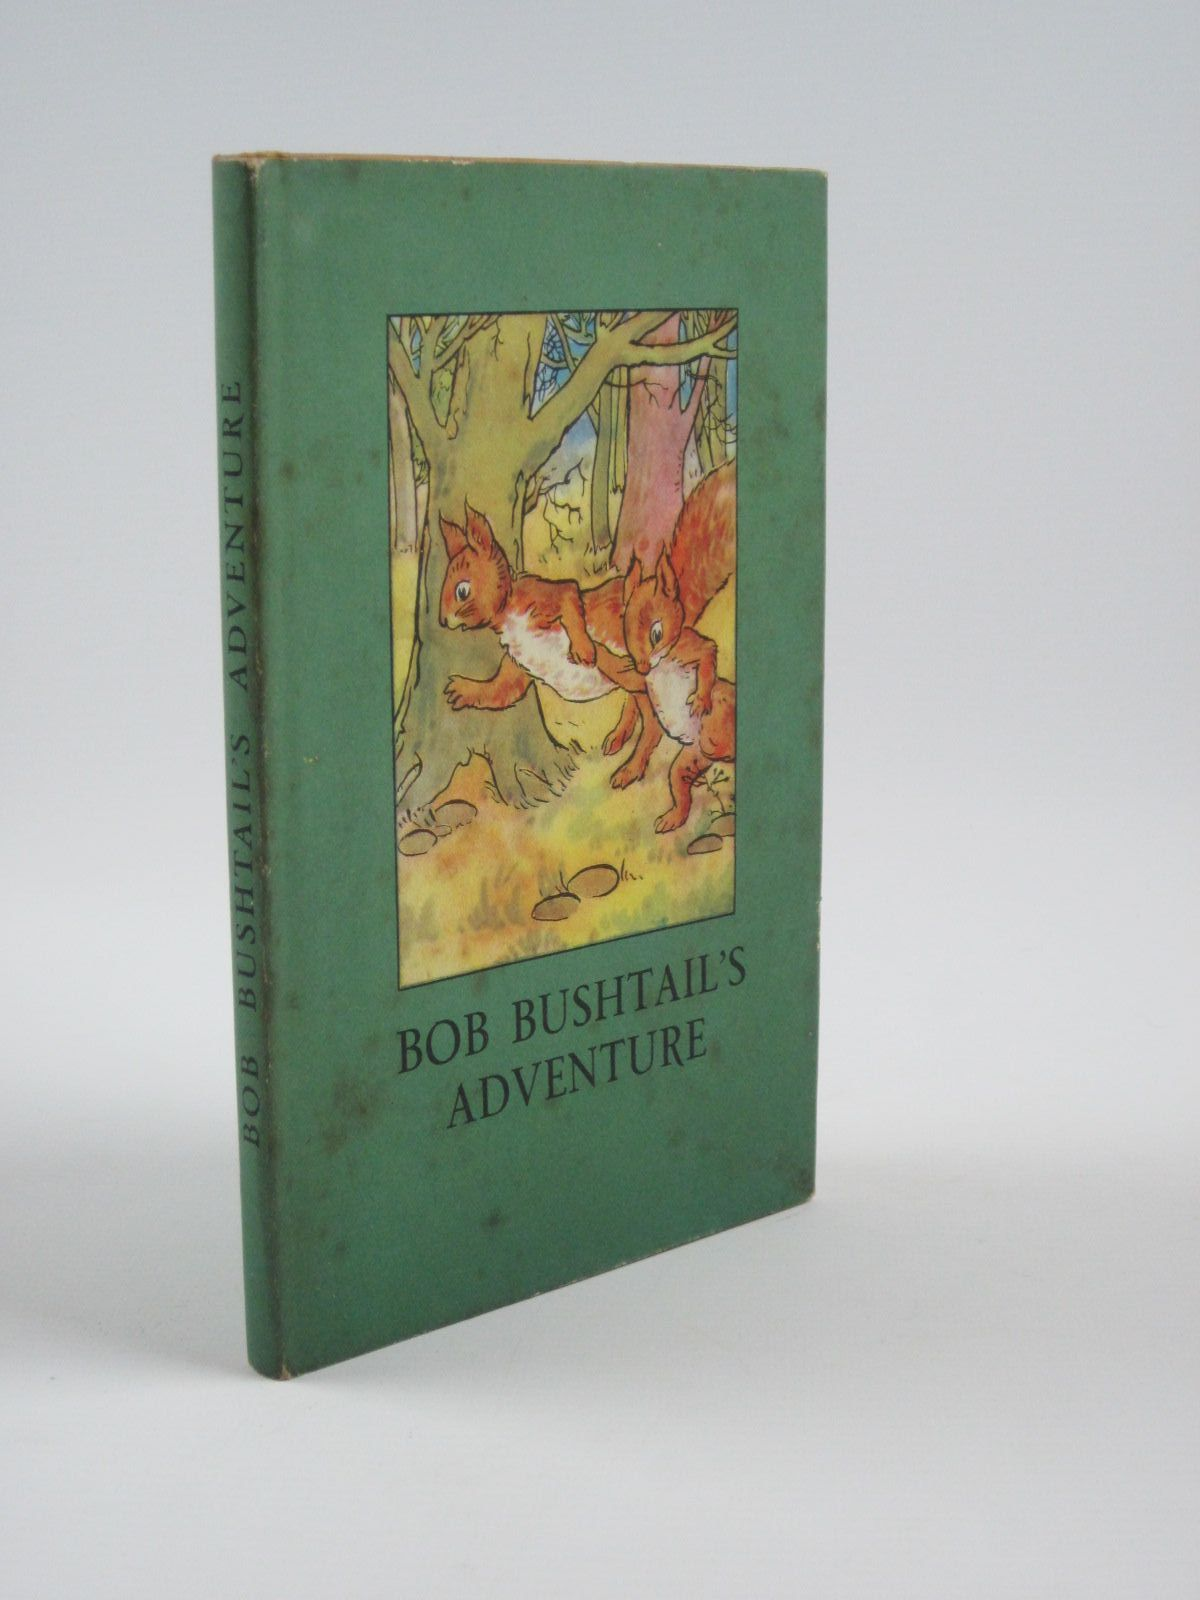 Photo of BOB BUSHTAIL'S ADVENTURE written by Macgregor, A.J. Perring, W. illustrated by Macgregor, A.J. published by Wills & Hepworth Ltd. (STOCK CODE: 1310188)  for sale by Stella & Rose's Books